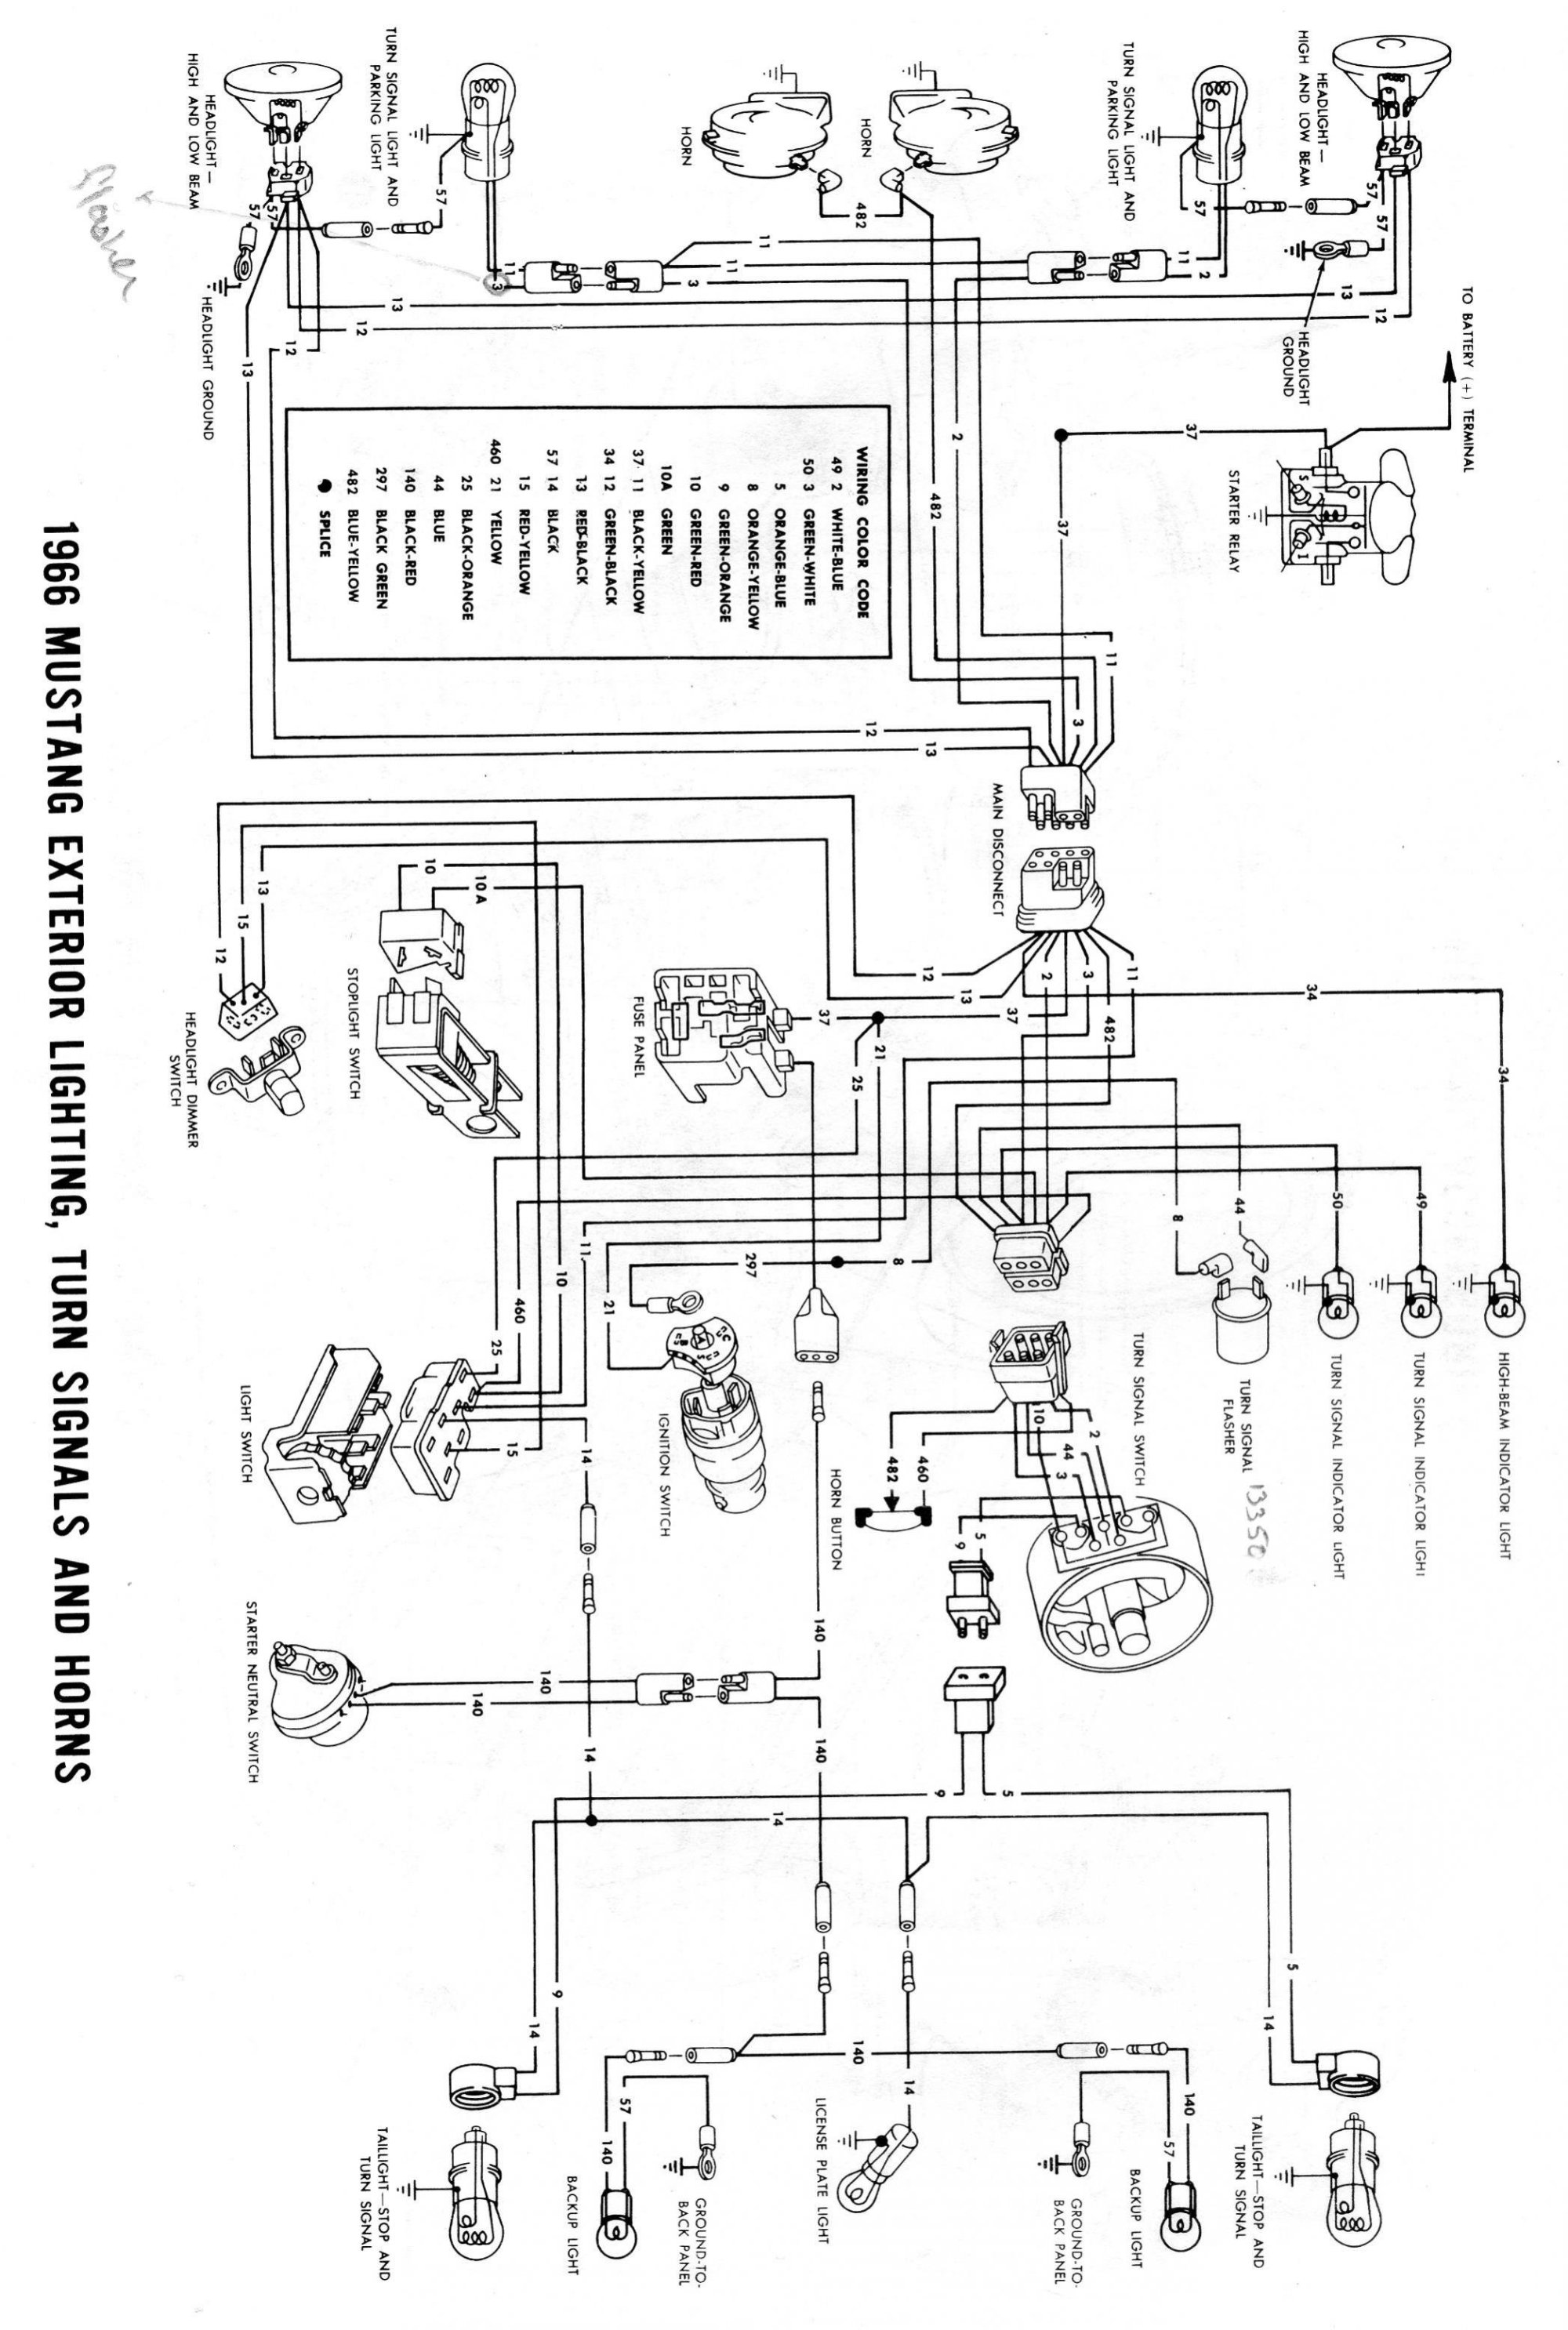 hight resolution of 1968 mustang headlight switch wiring diagram wiring diagram65 ford headlight switch wiring diagram free picture wiring